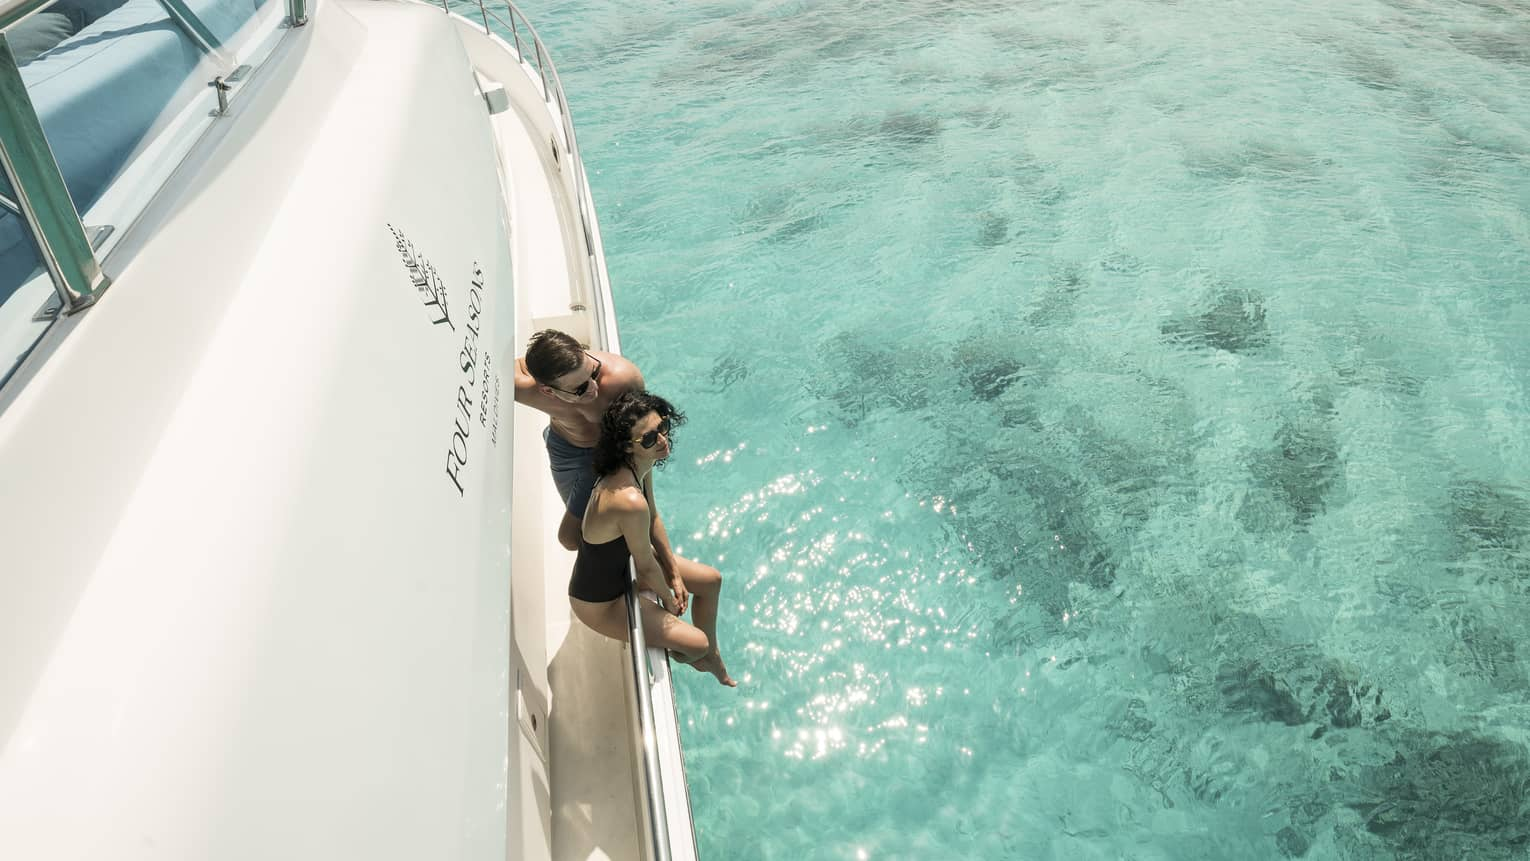 A couple lounges on the side of a yacht in a blue lagoon